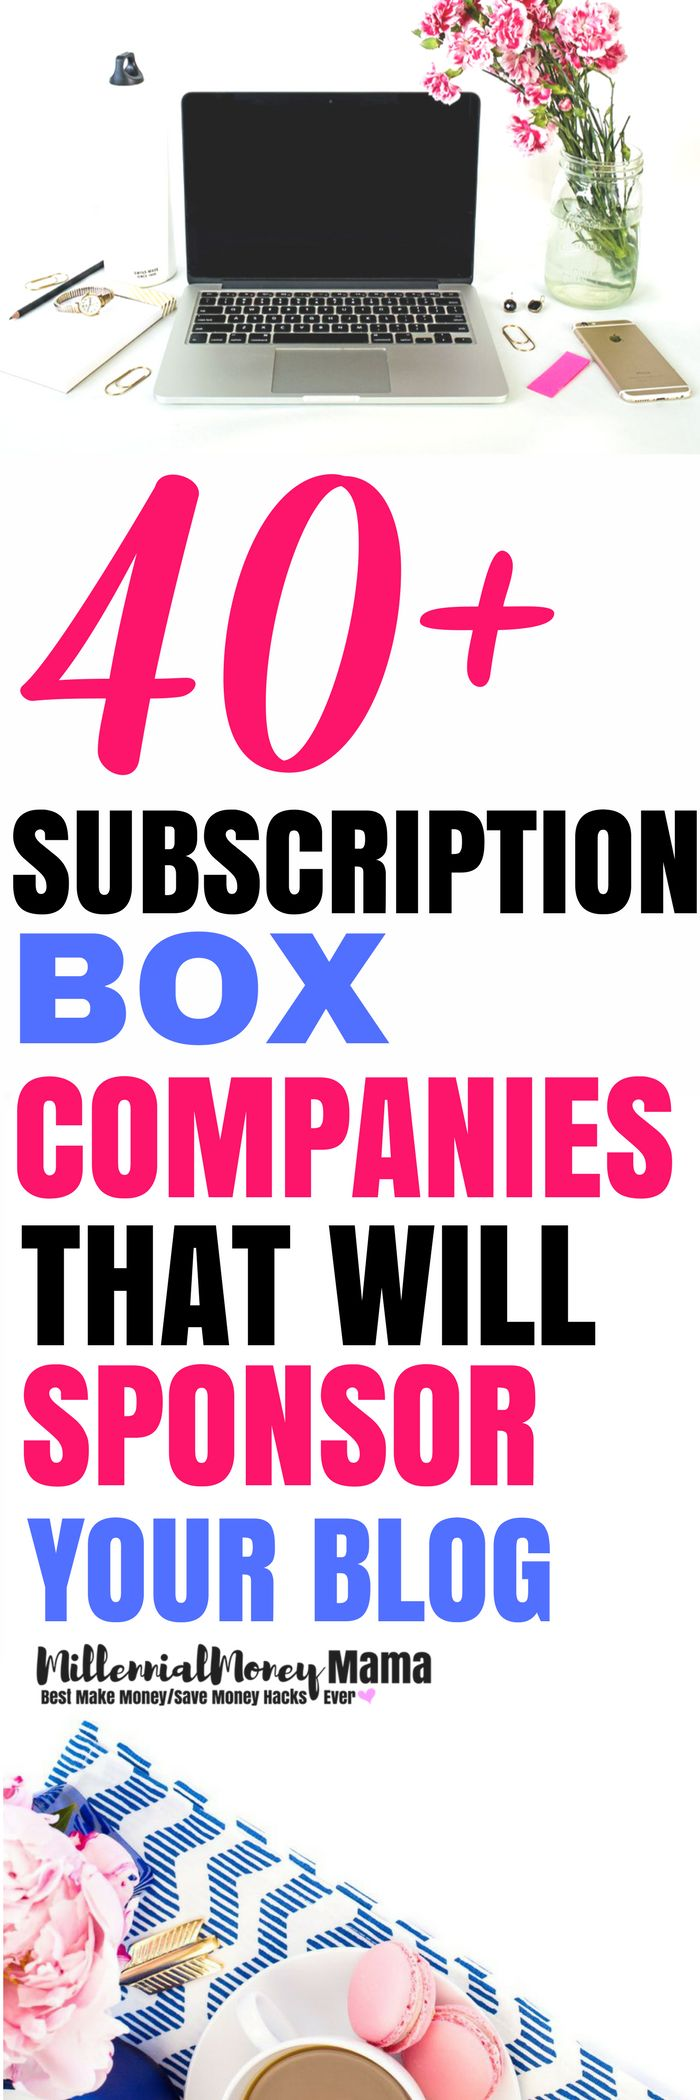 40+ SUBSCRIPTION BOX COMPANIES THAT WILL SPONSOR YOUR BLOG